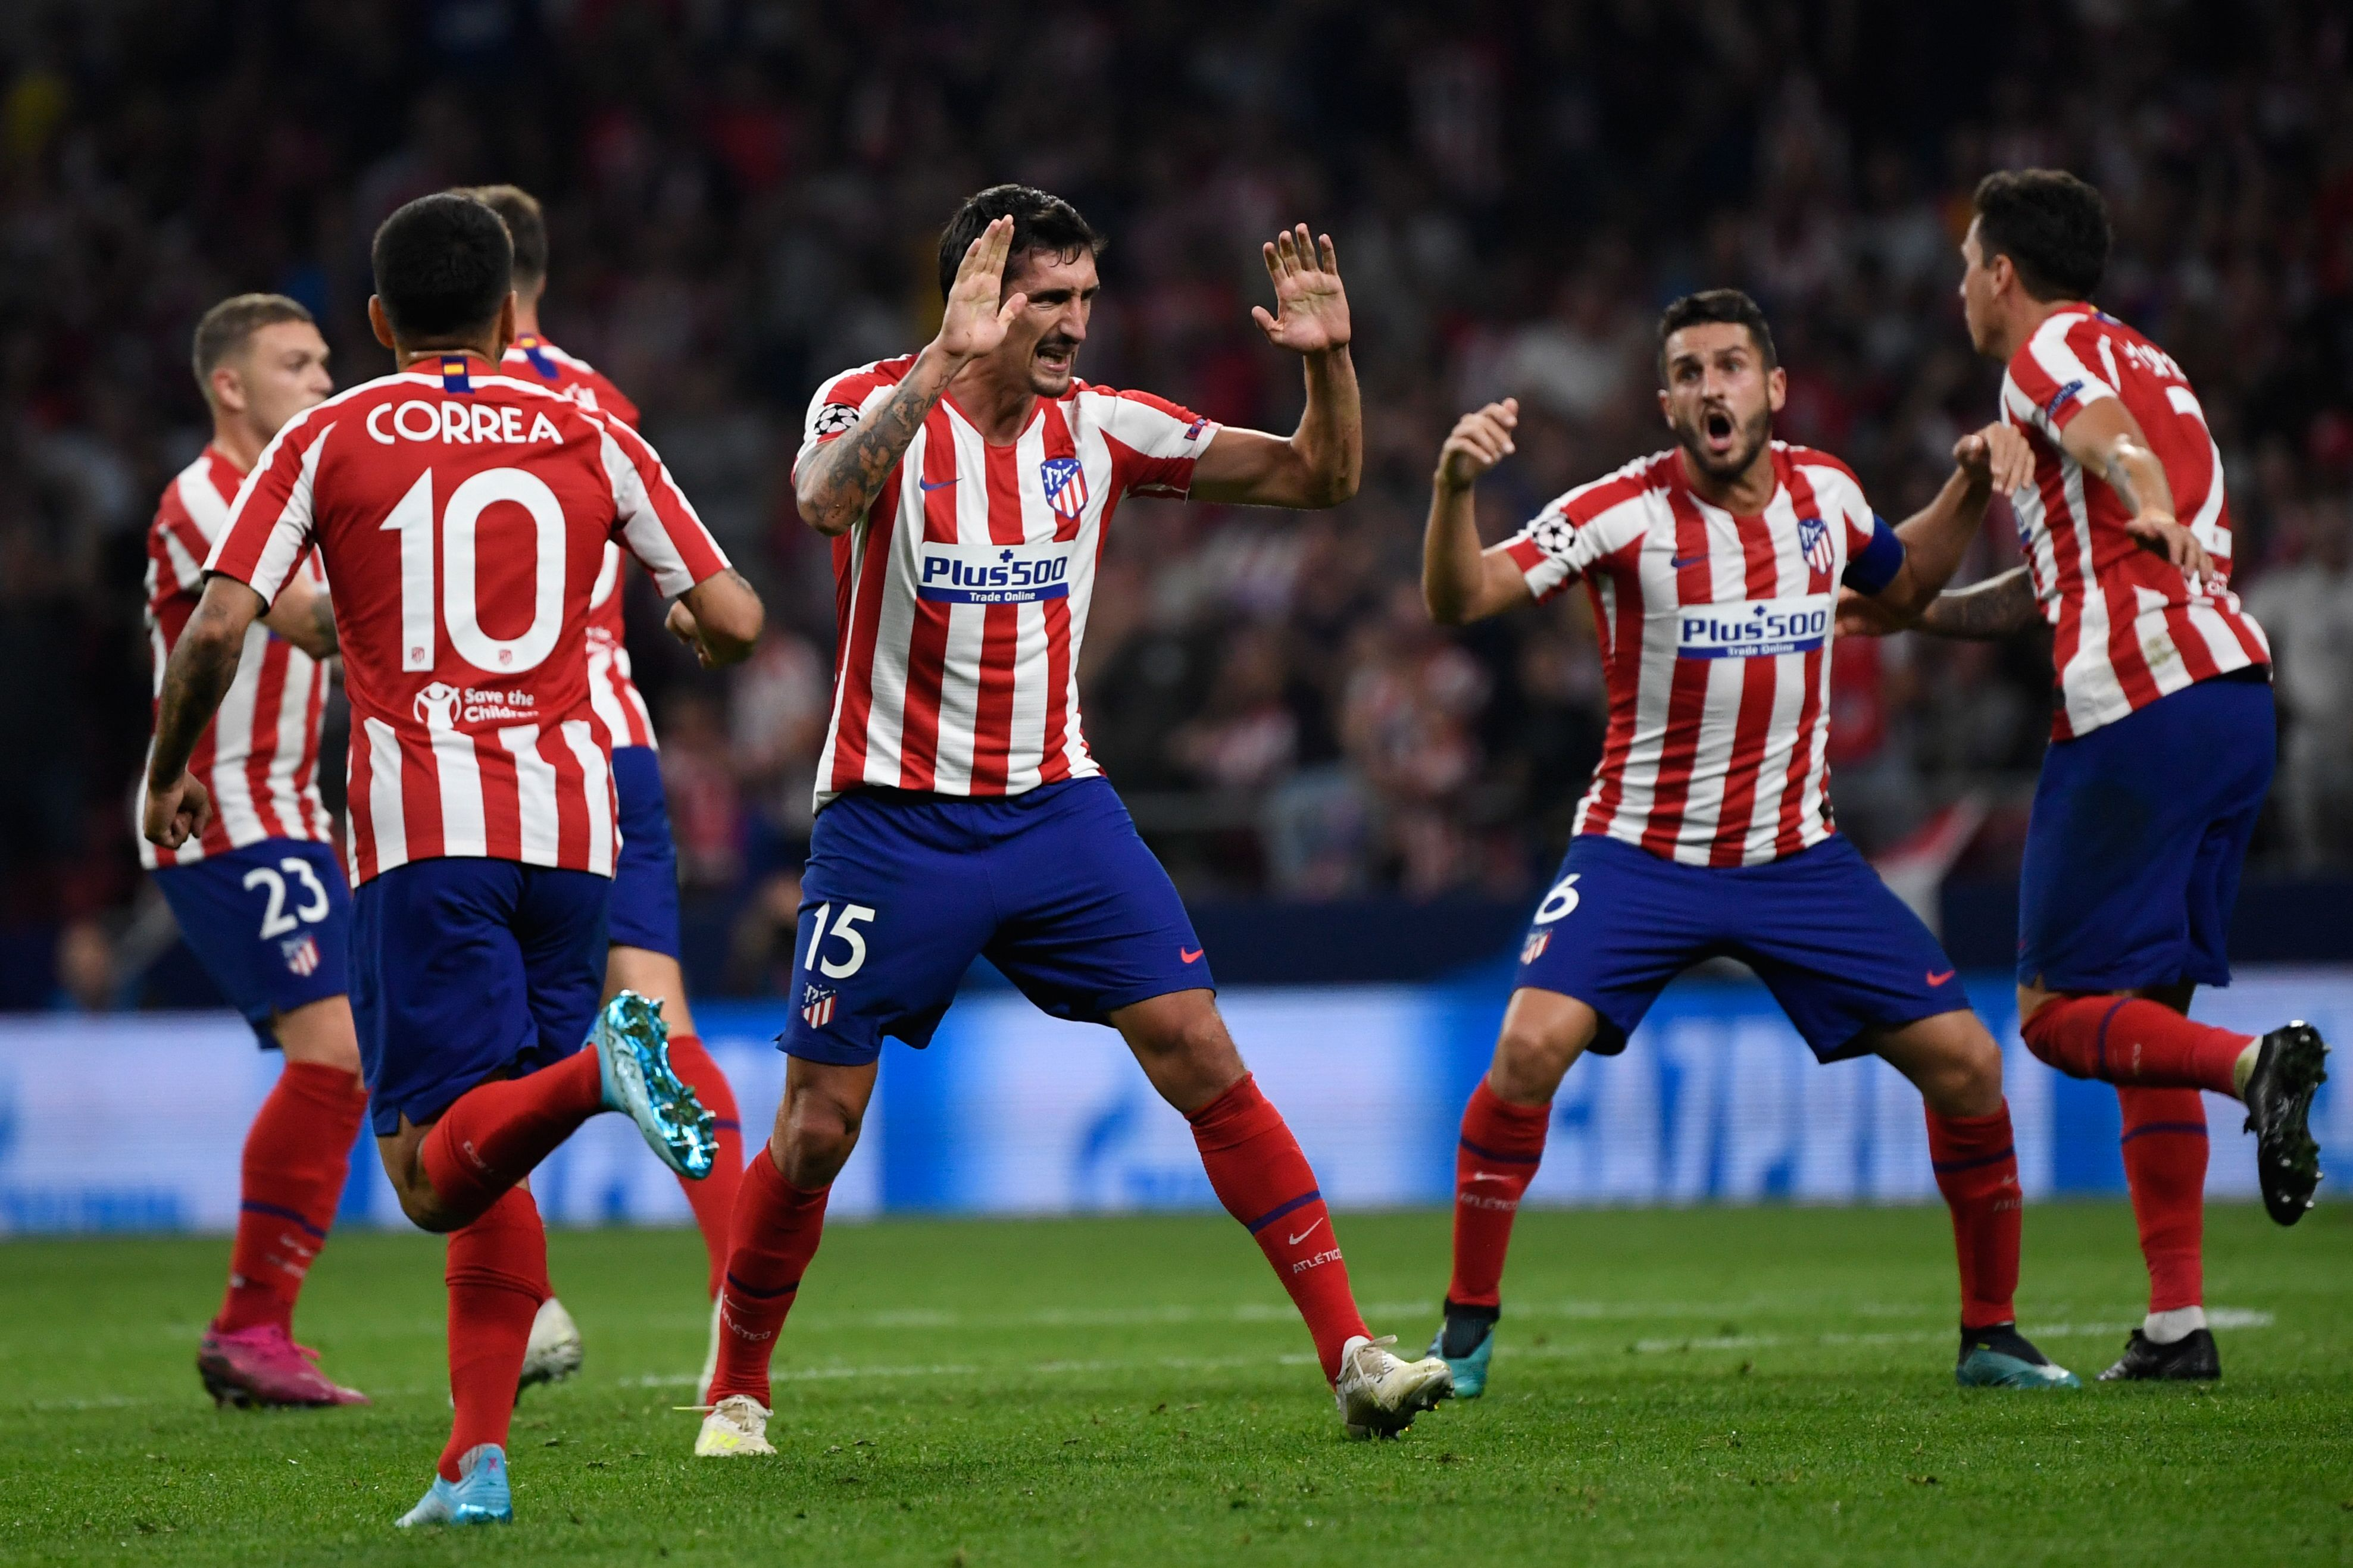 Atletico players celebrate Stefan Savic's goal.